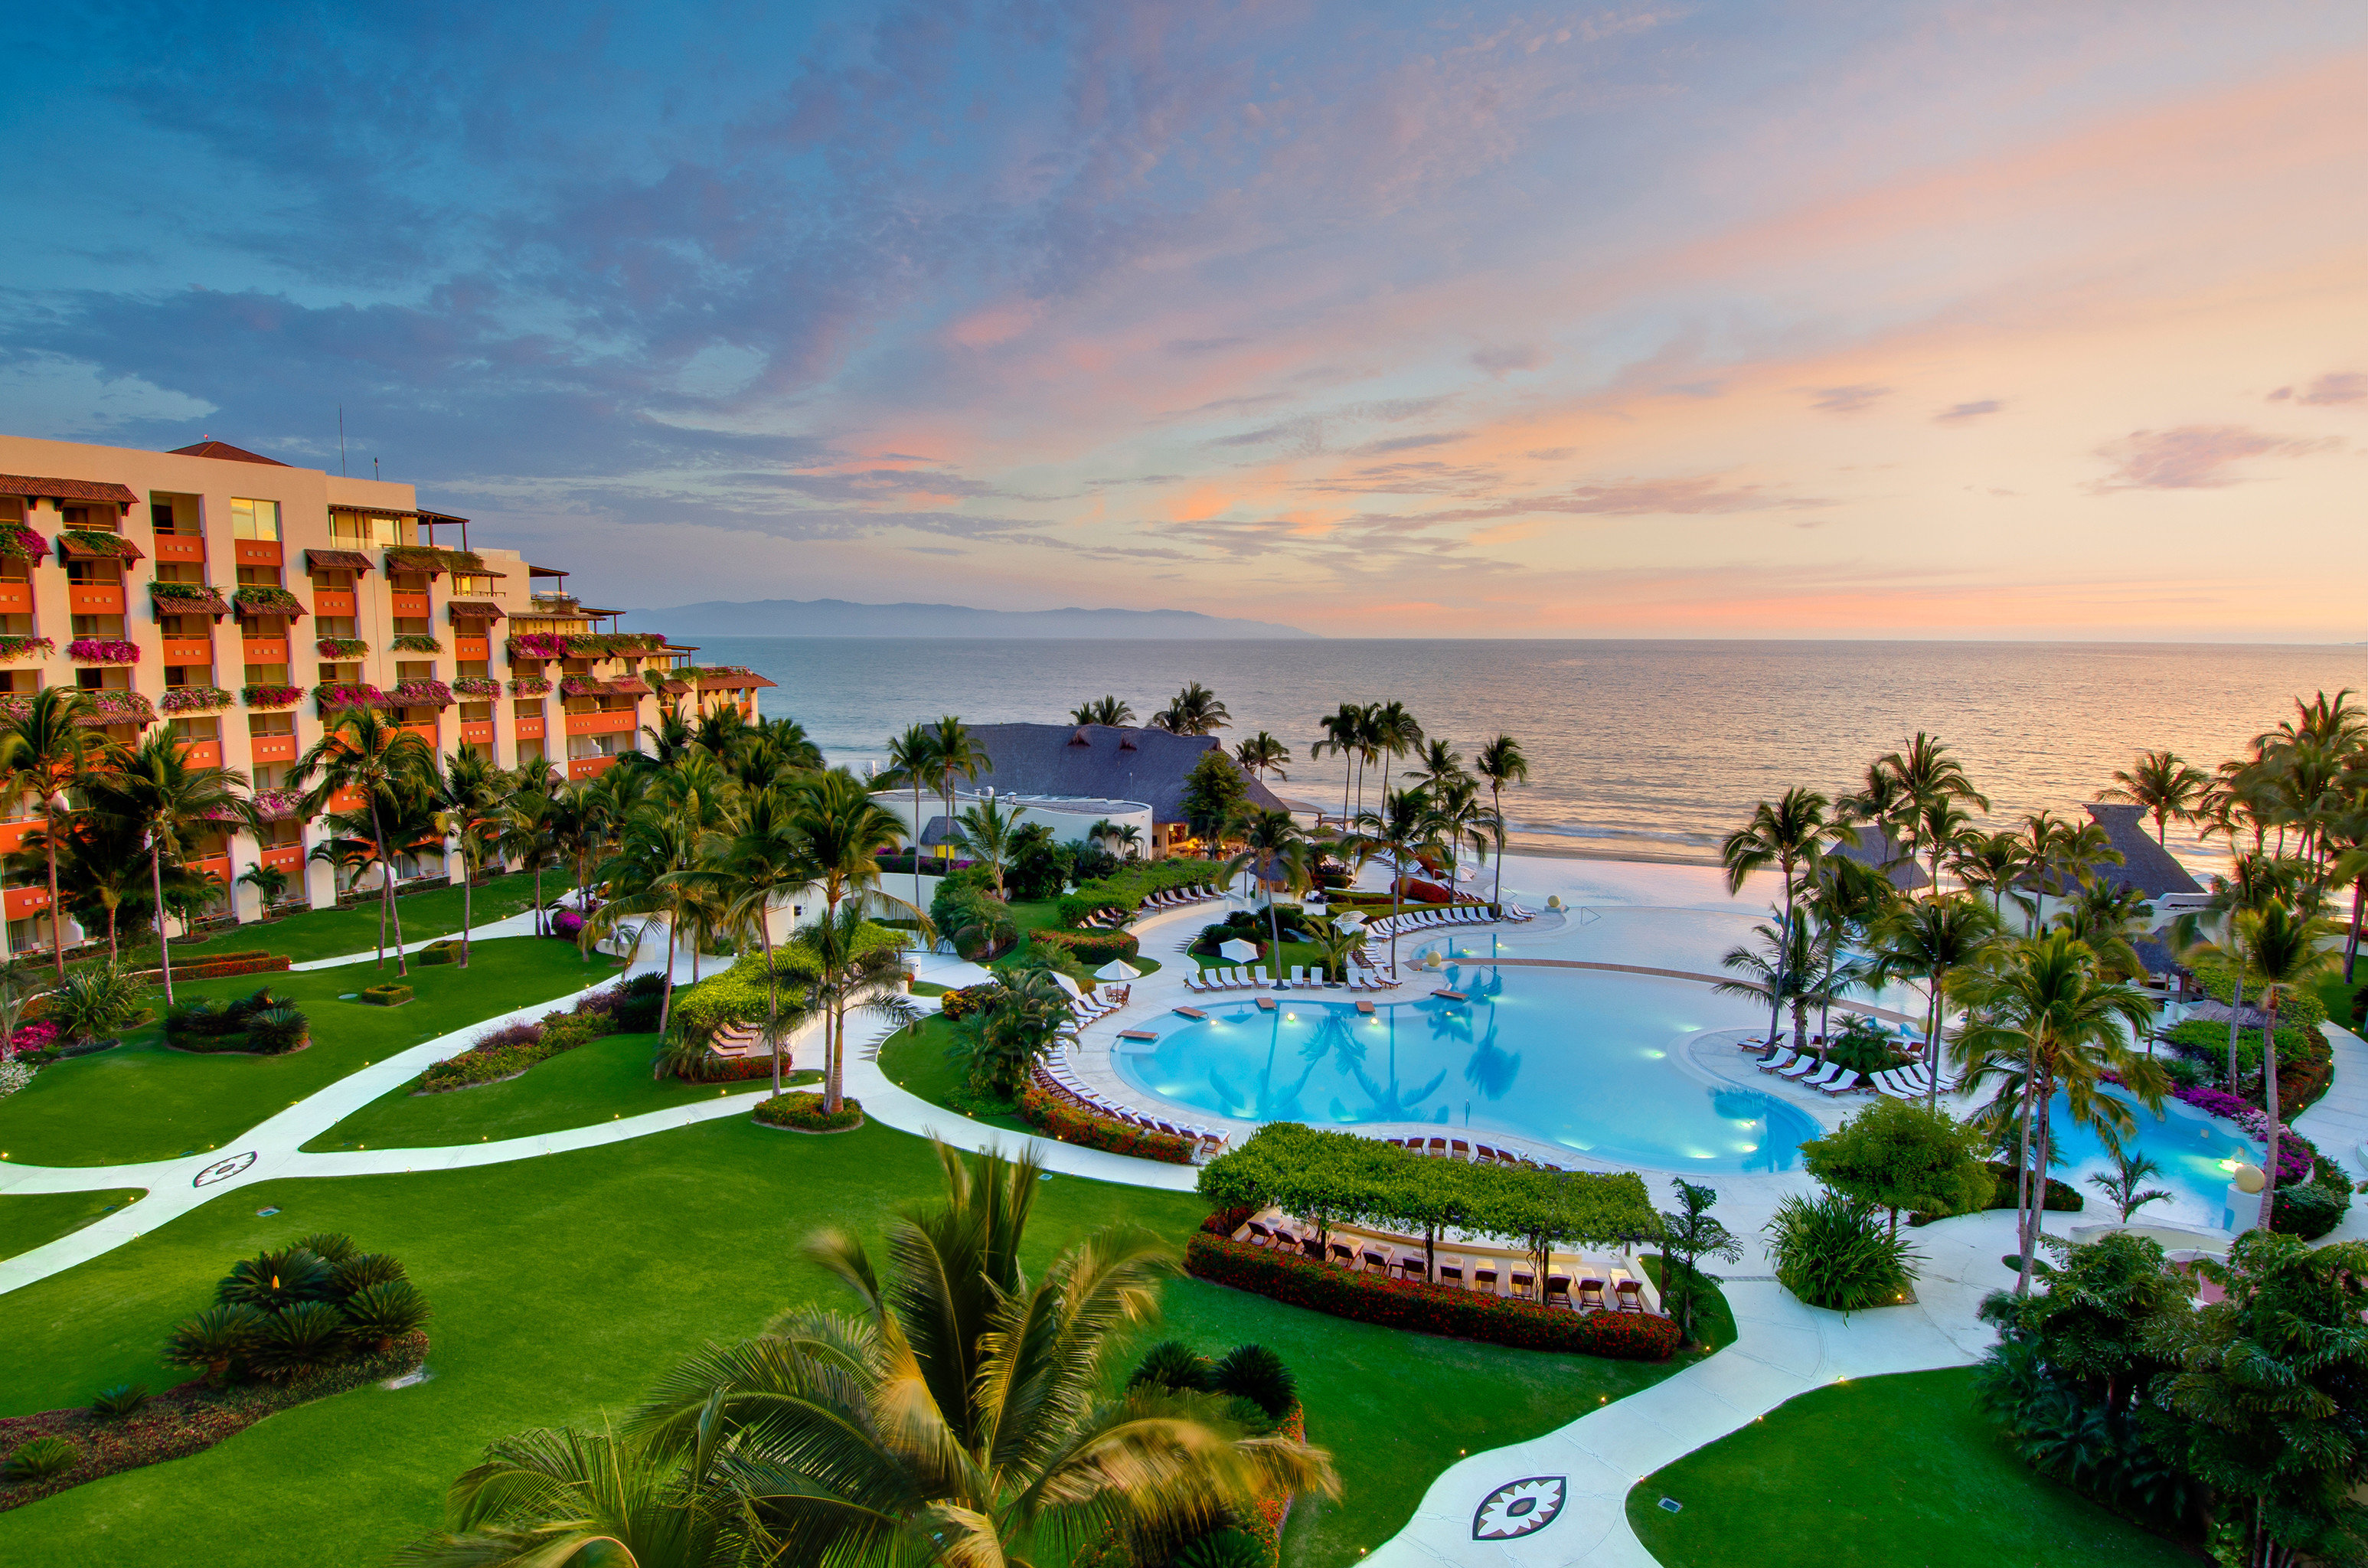 All-Inclusive Resorts Beach Beachfront Exterior Grounds Hotels Pool Resort Romance Sunset Tropical sky grass green Sea Coast swimming pool caribbean plant Garden